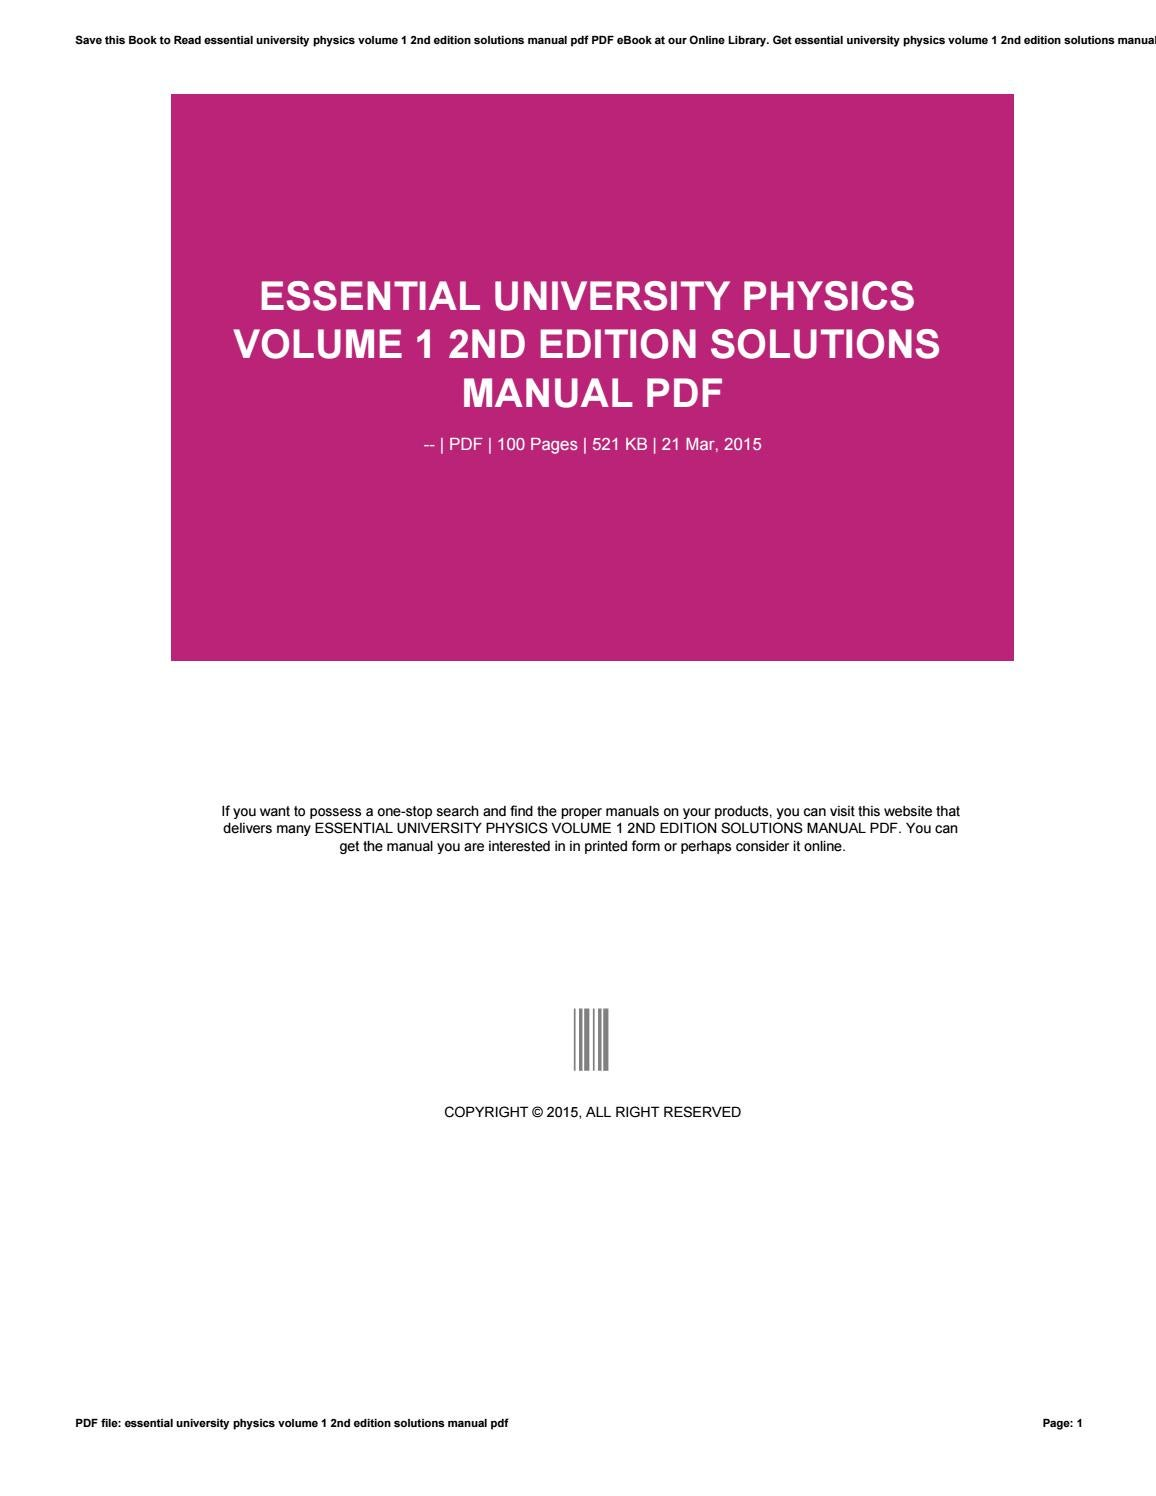 Essential university physics volume 1 2nd edition solutions manual pdf by  andreas7yuana - issuu